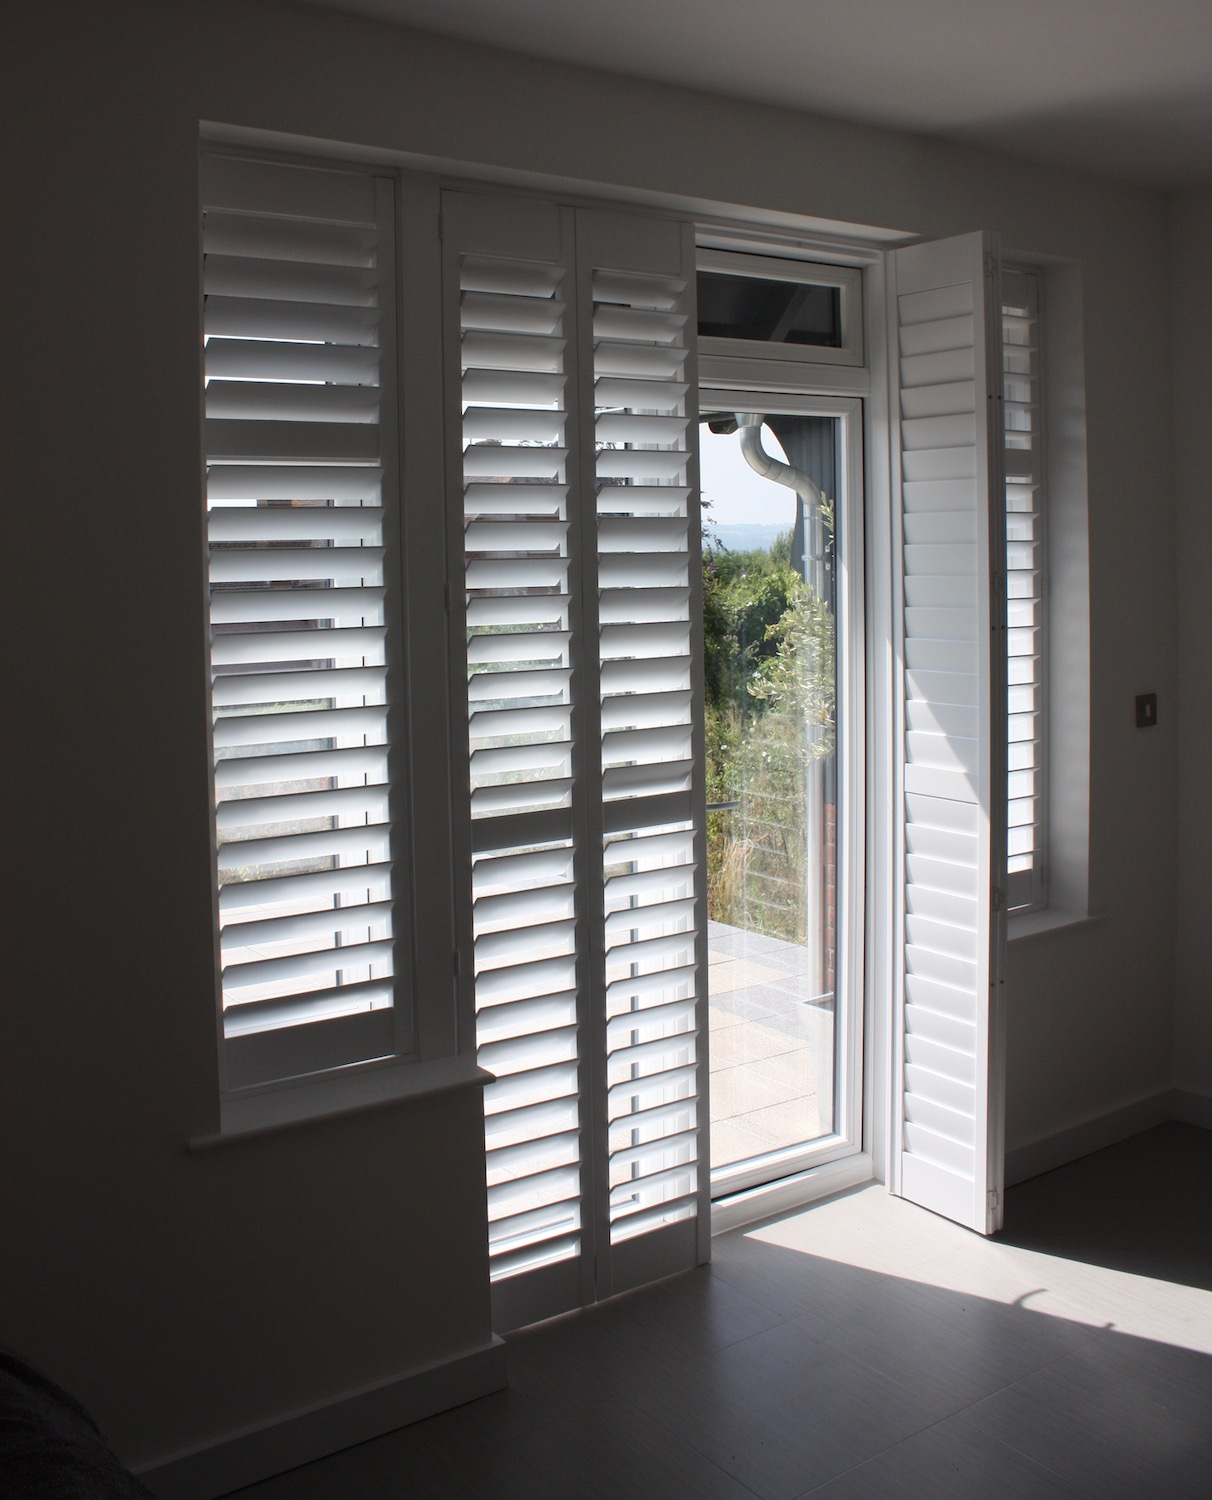 Frech Type Doors With Wing Windows Dresse With  Plantation Shutters